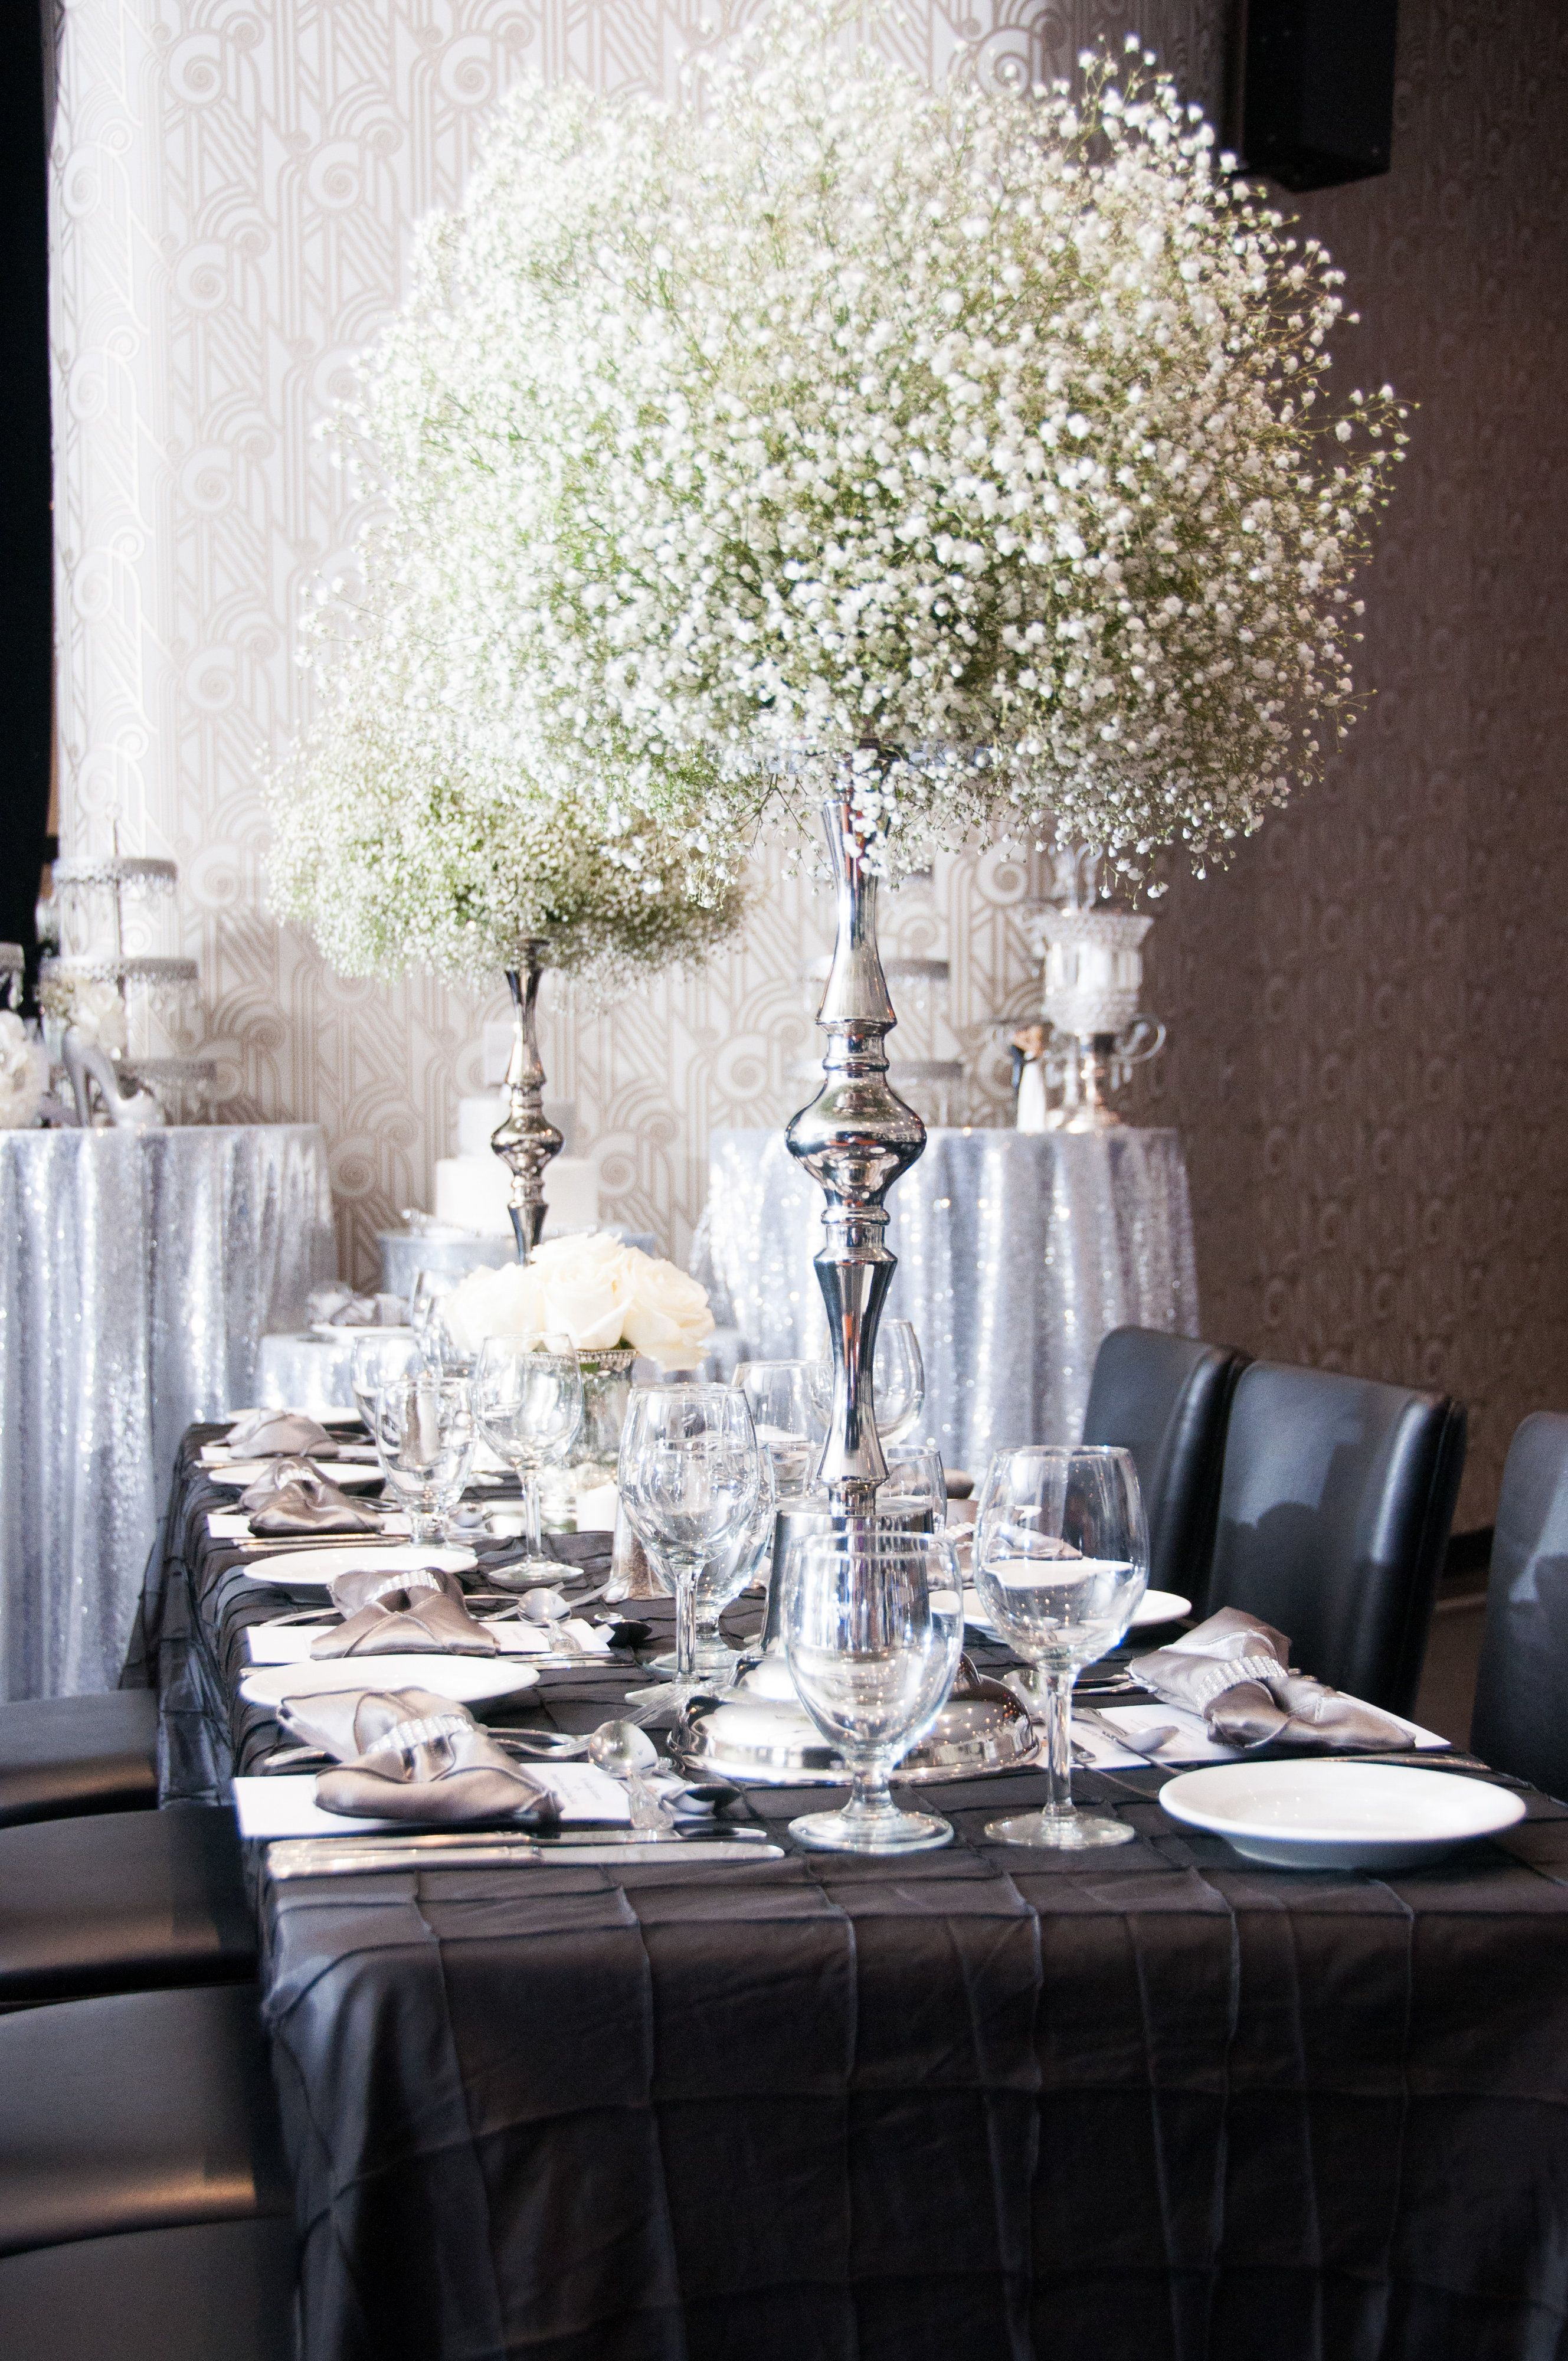 Http Www Weddingbee Com Classifieds Show Ad Id 55773 Items For Sale Mercury Glass Wedding Decor Wedding Decorations Reception Table